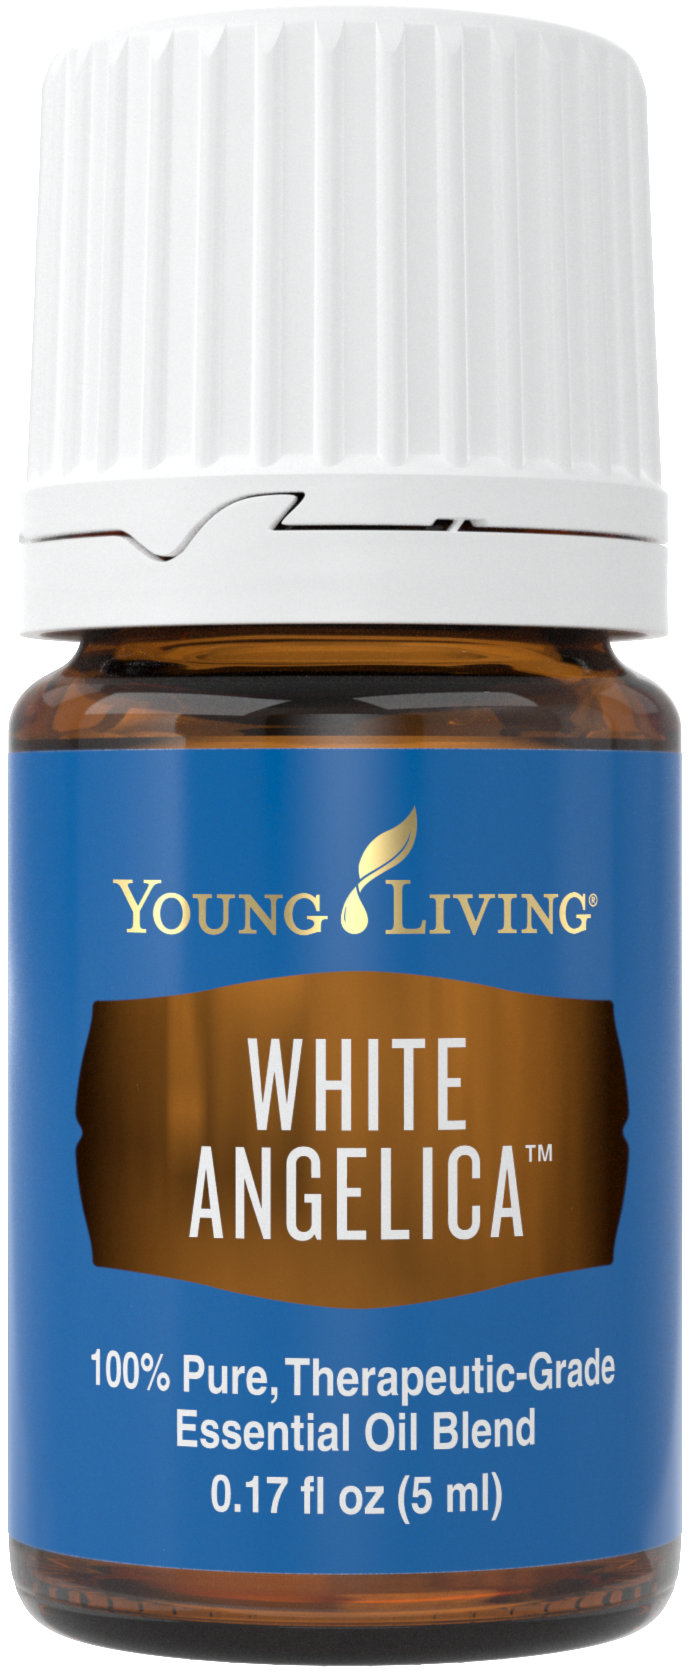 White Angelica